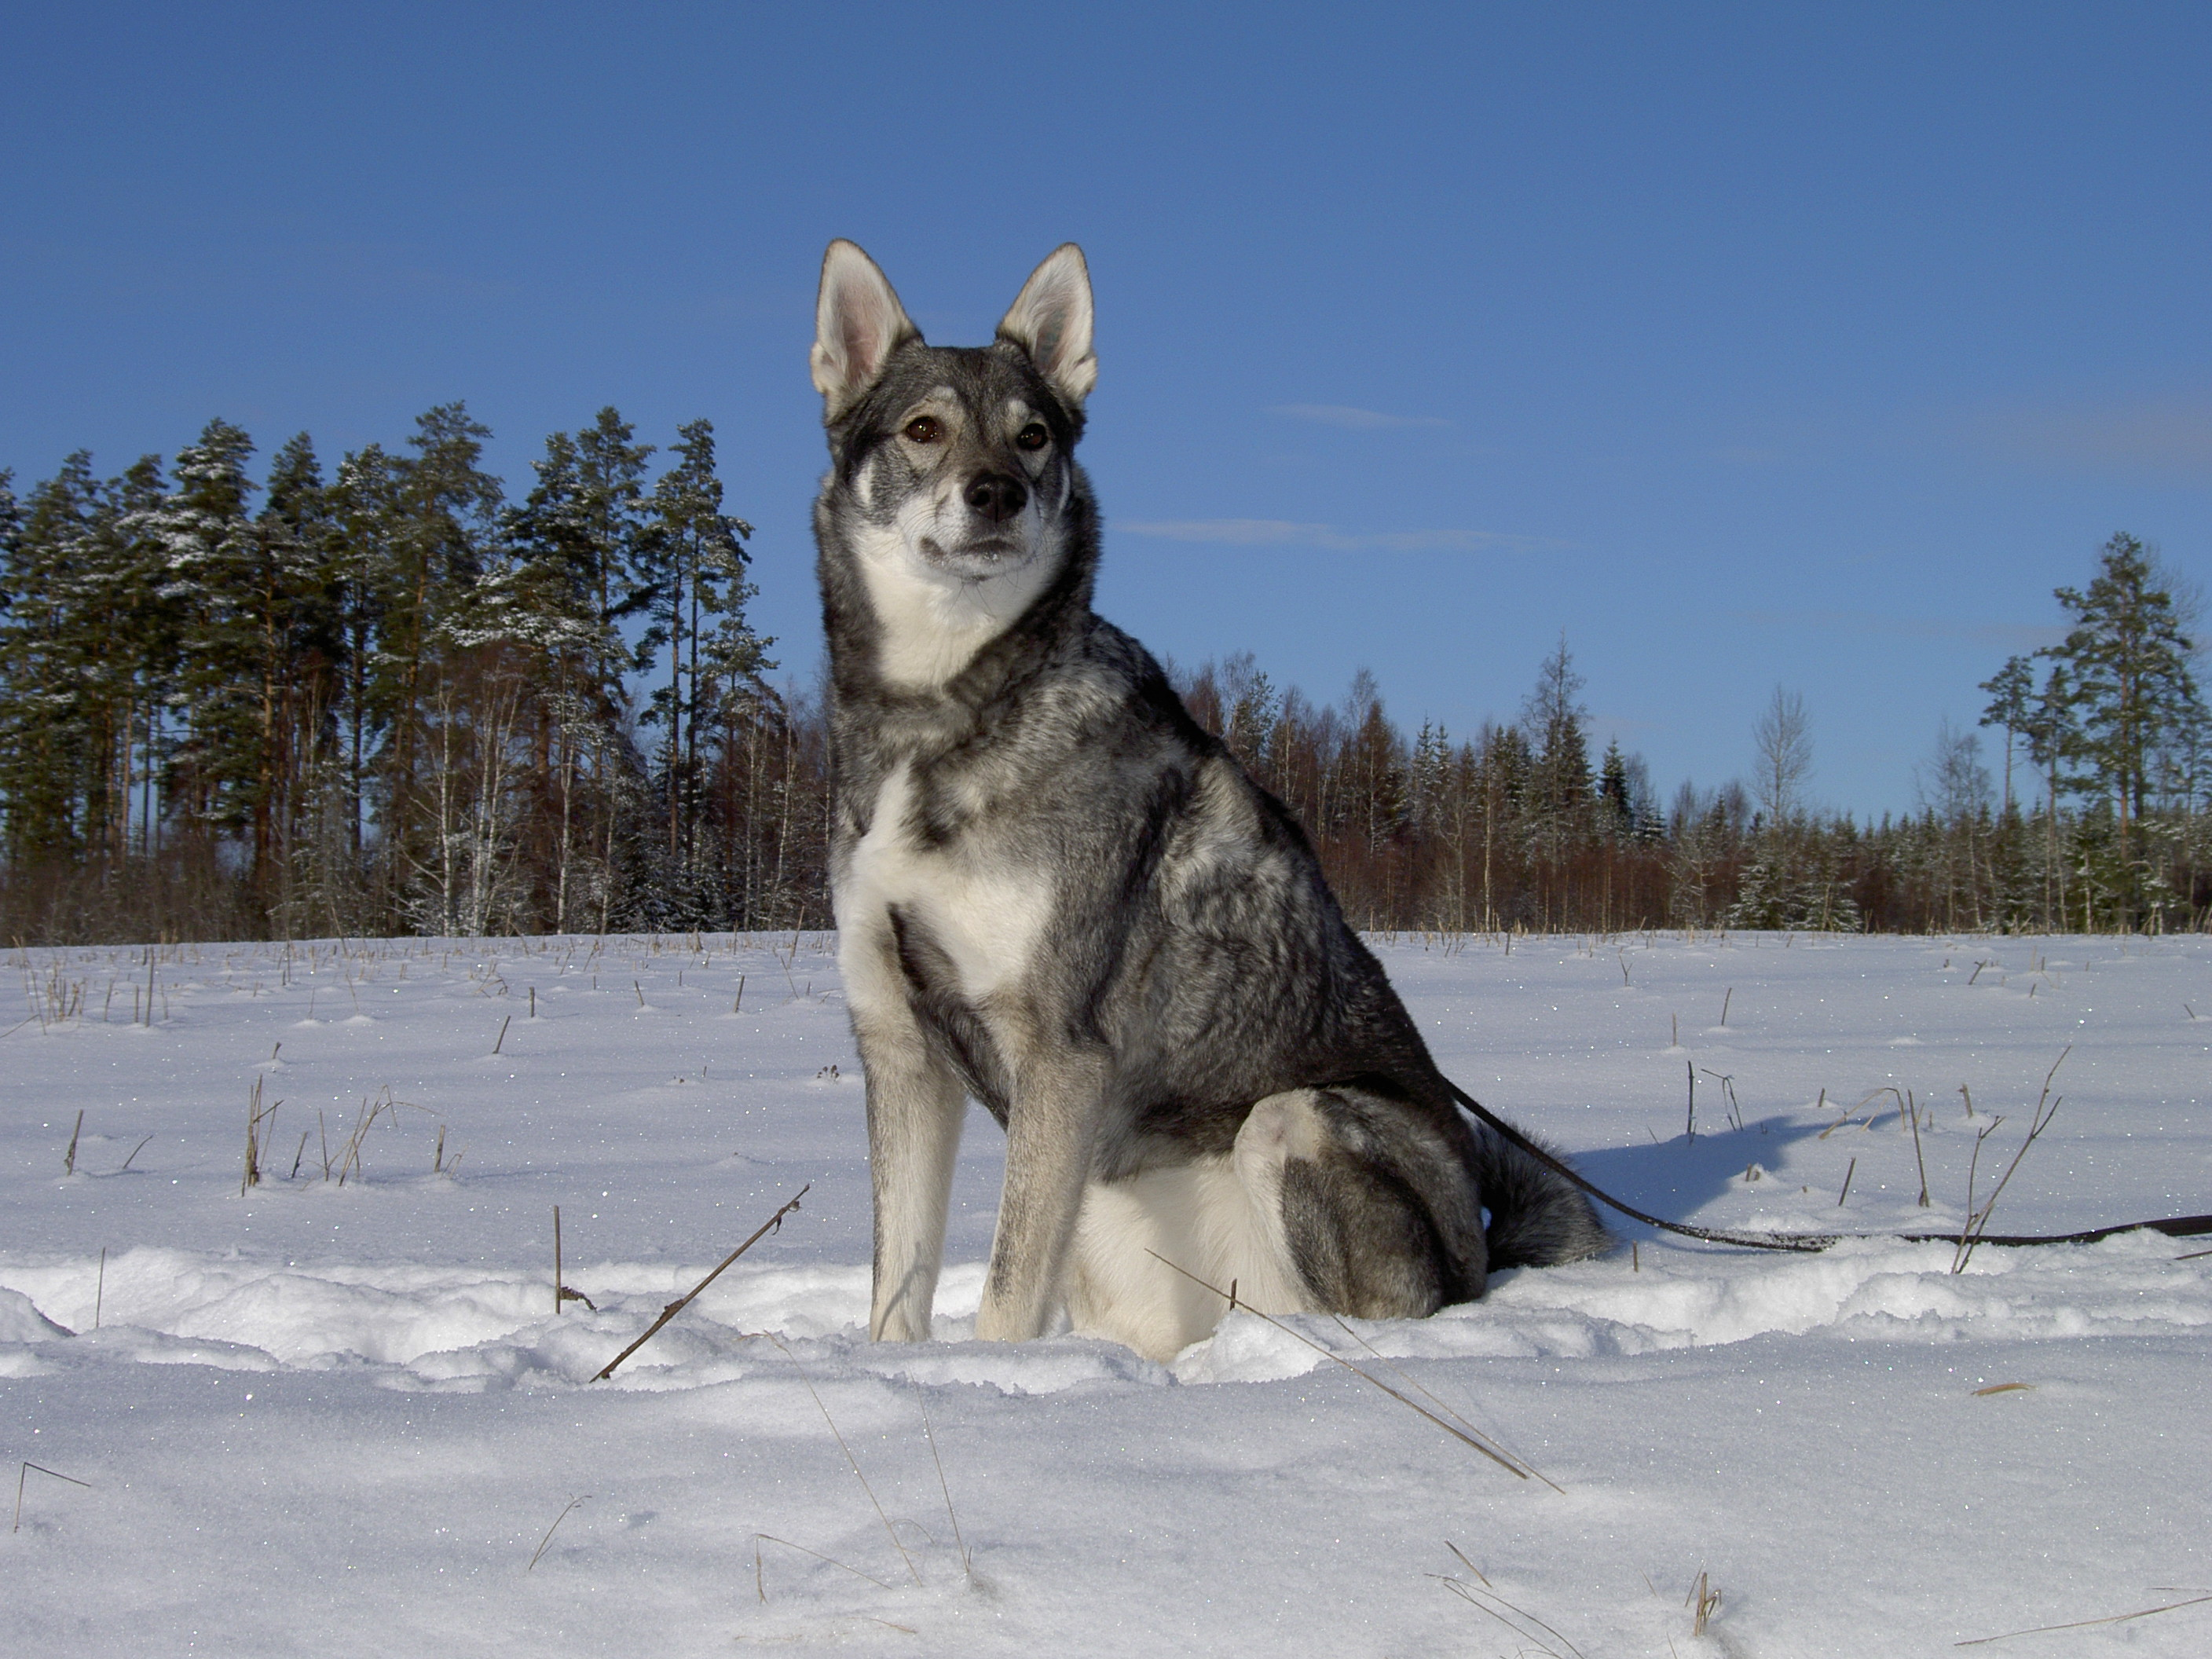 Jmthund dog in the snow photo and wallpaper Beautiful Jmthund dog 2816x2112